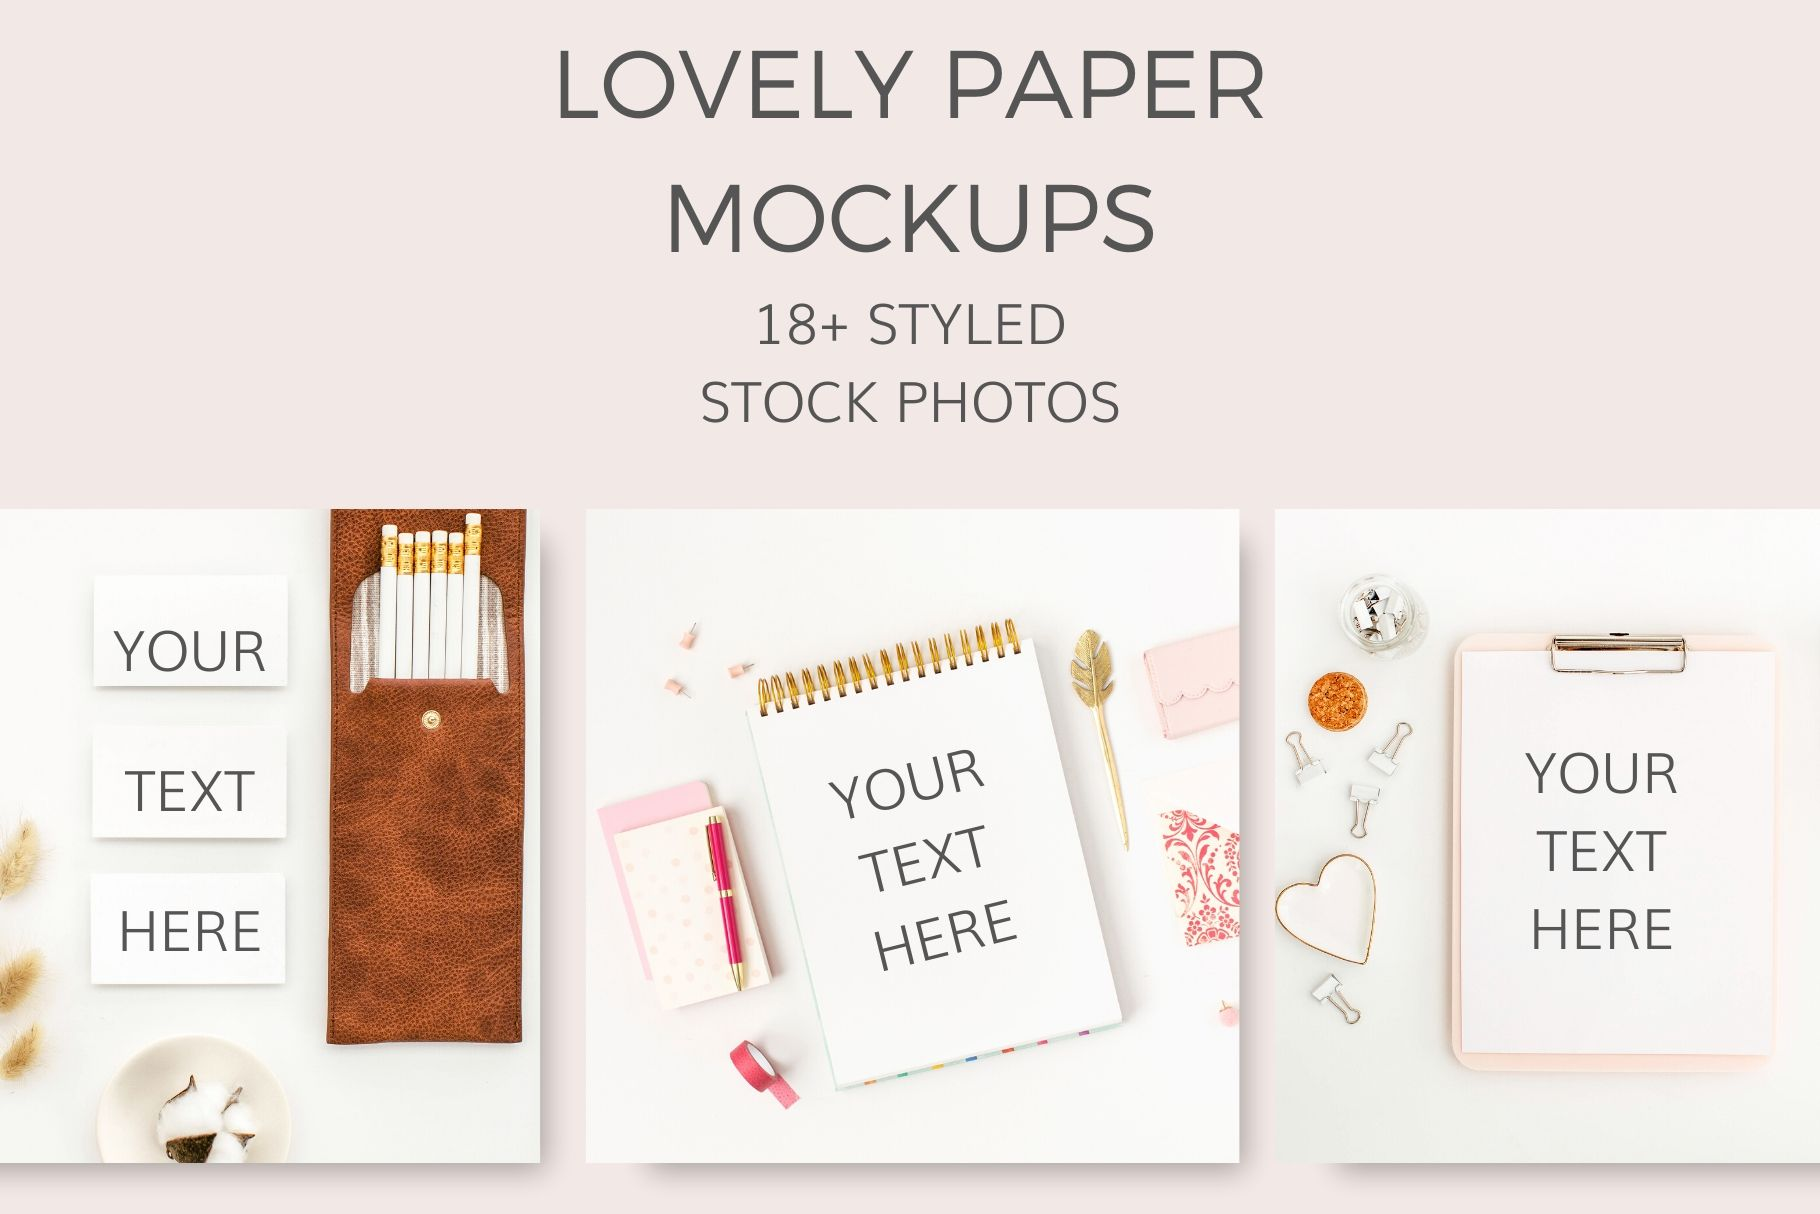 LOVELY PAPER MOCKUP STOCK PHOTOS